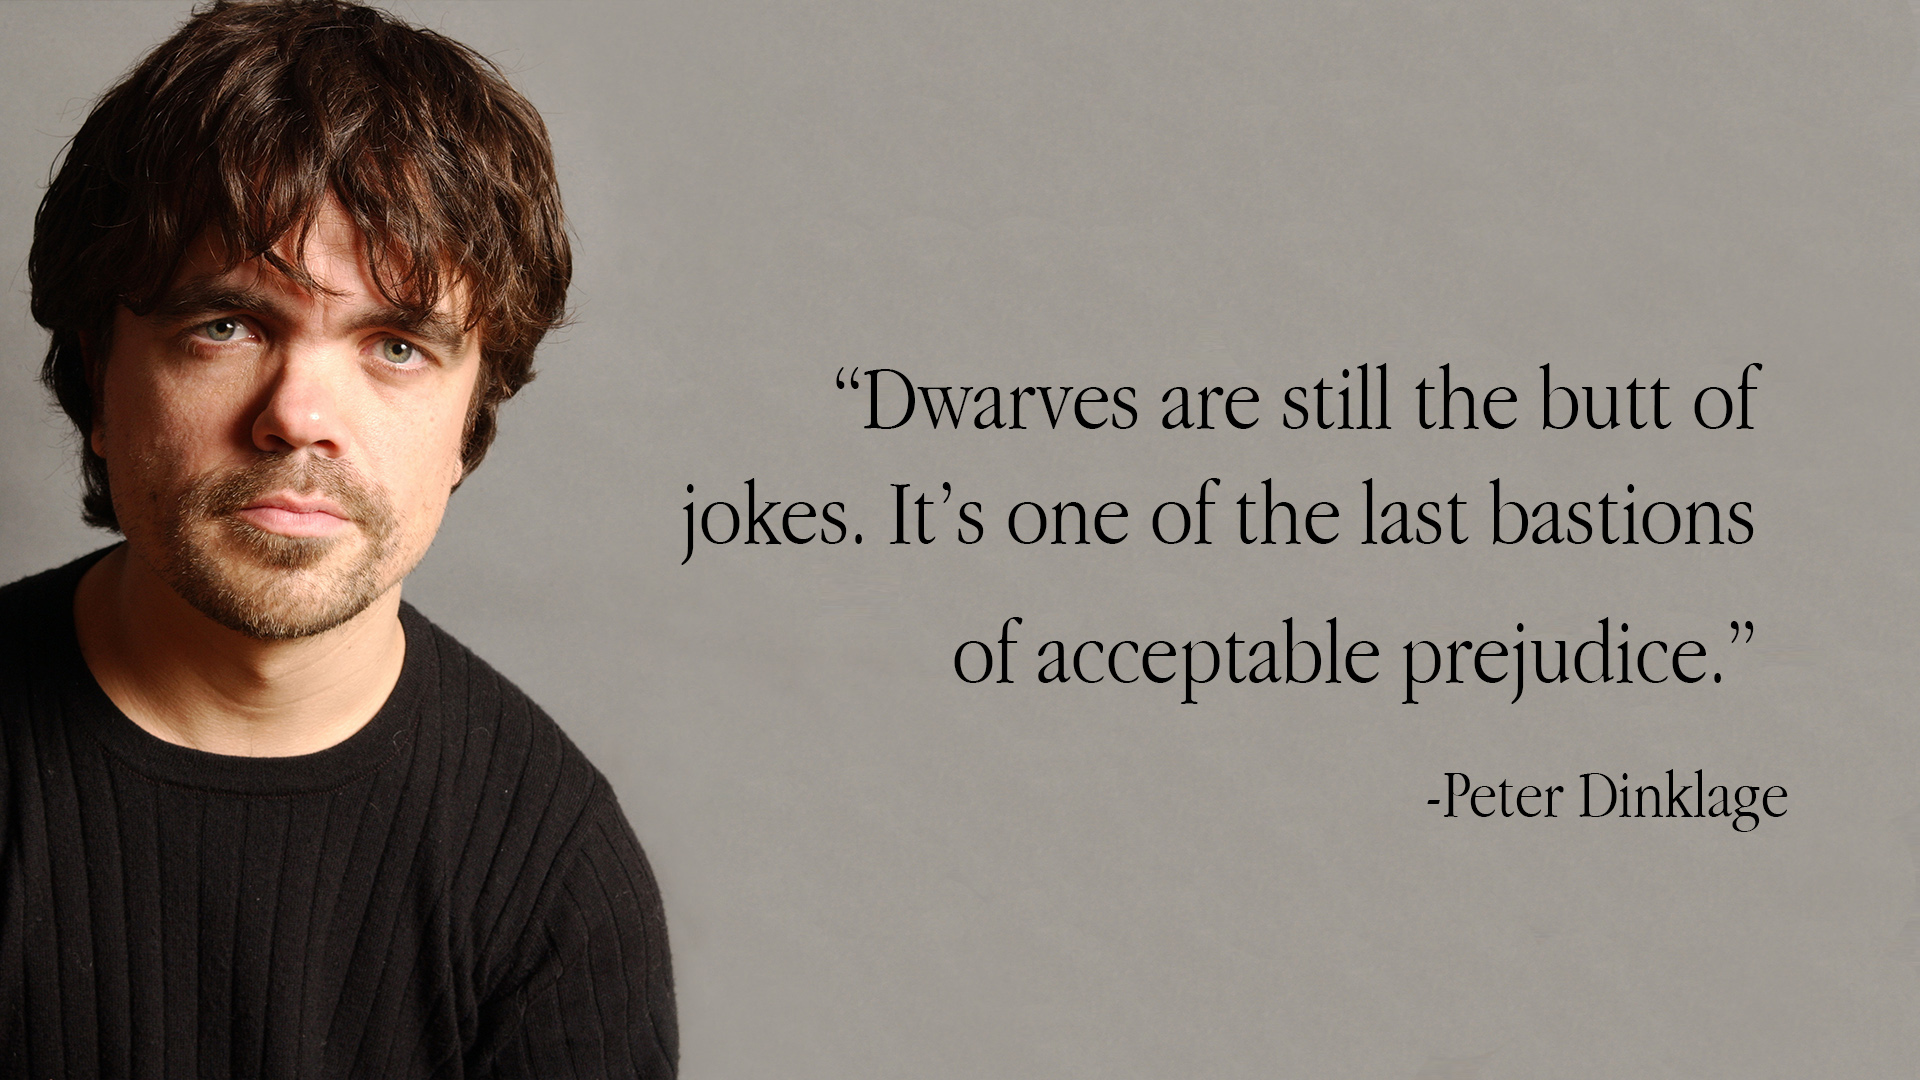 Peter Dinklage's quote #1